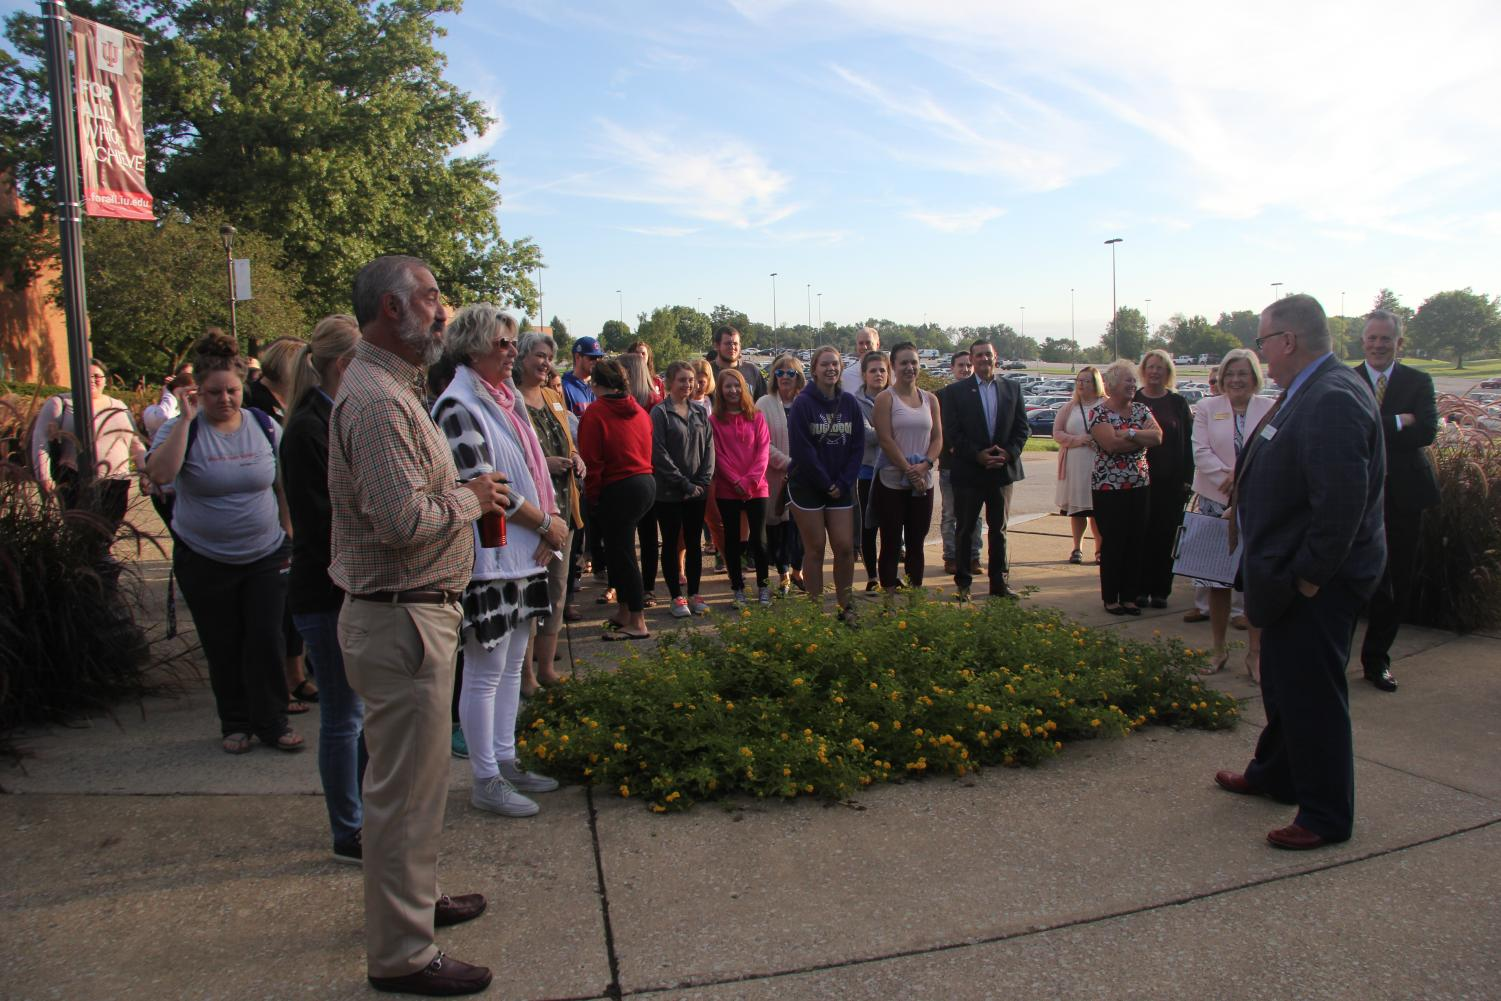 IUS students and faculty gathered at McCullough Plaza at 8:45 a.m. on Tuesday to remember the attacks on Sept 11, 17 years ago.